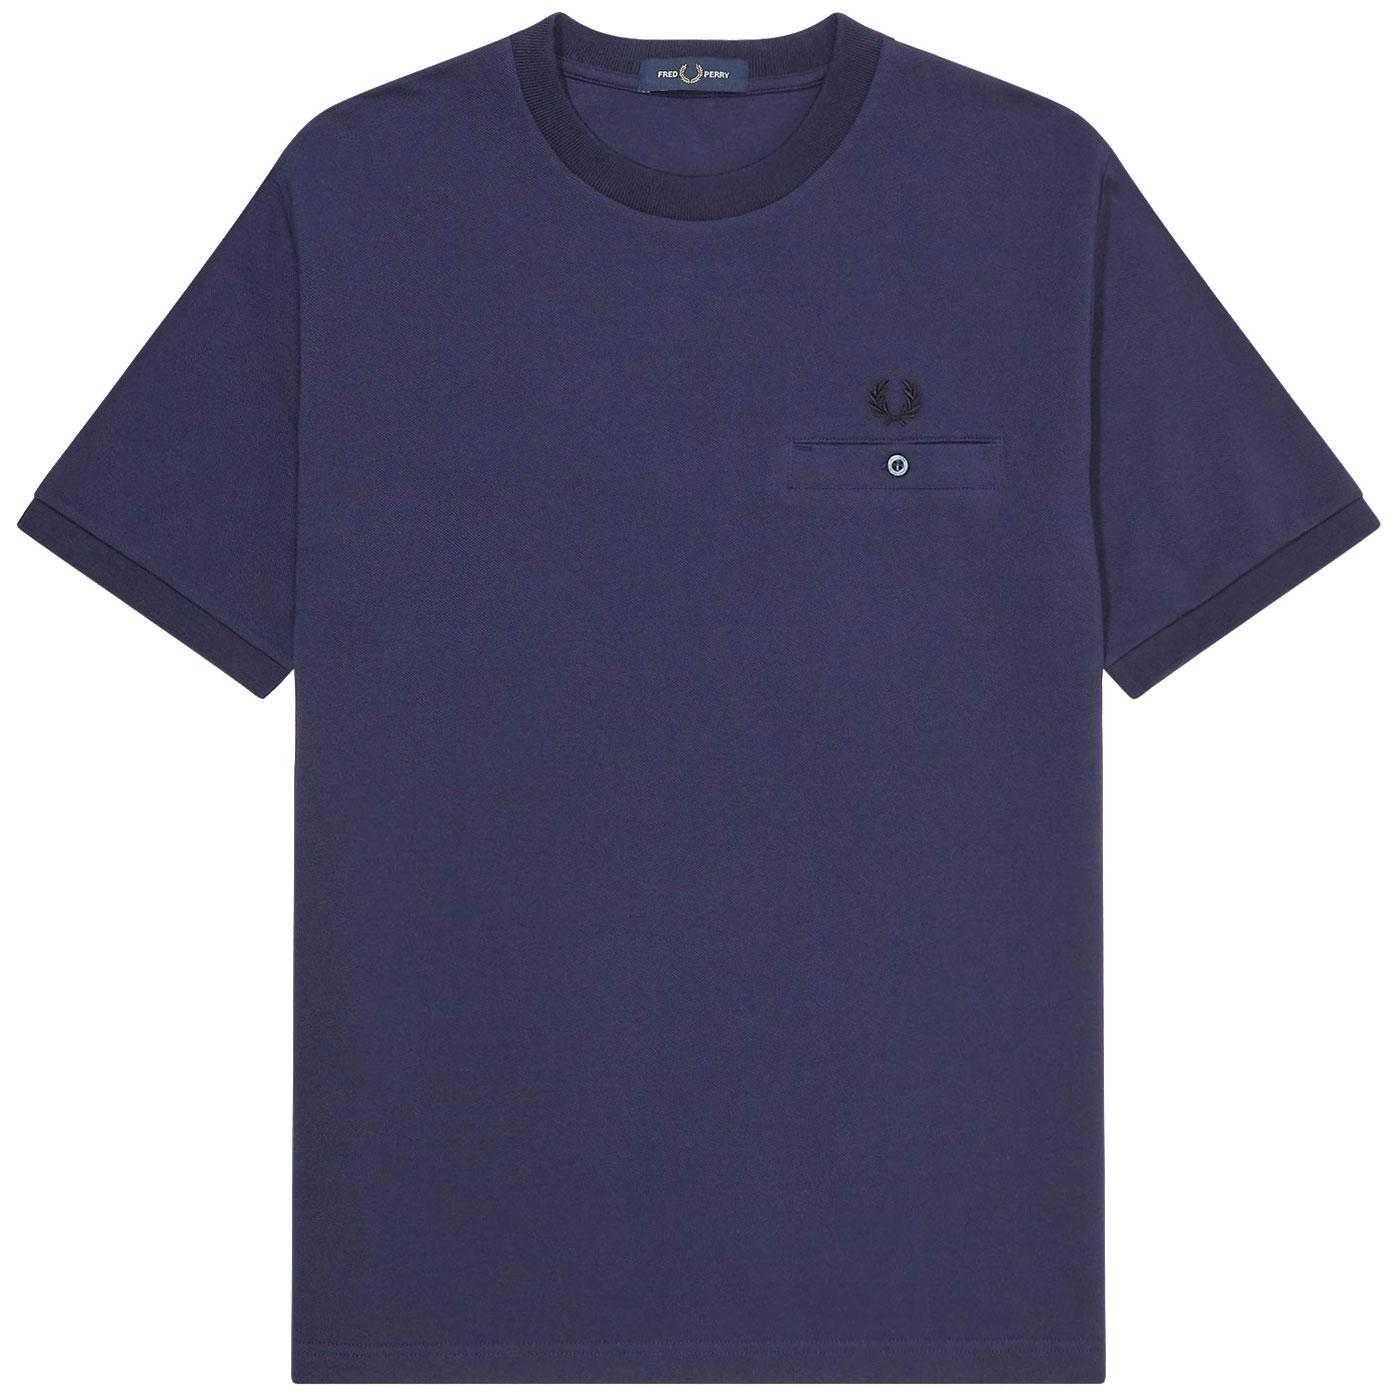 FRED PERRY Men's Retro Pocket Detail Pique T-Shirt